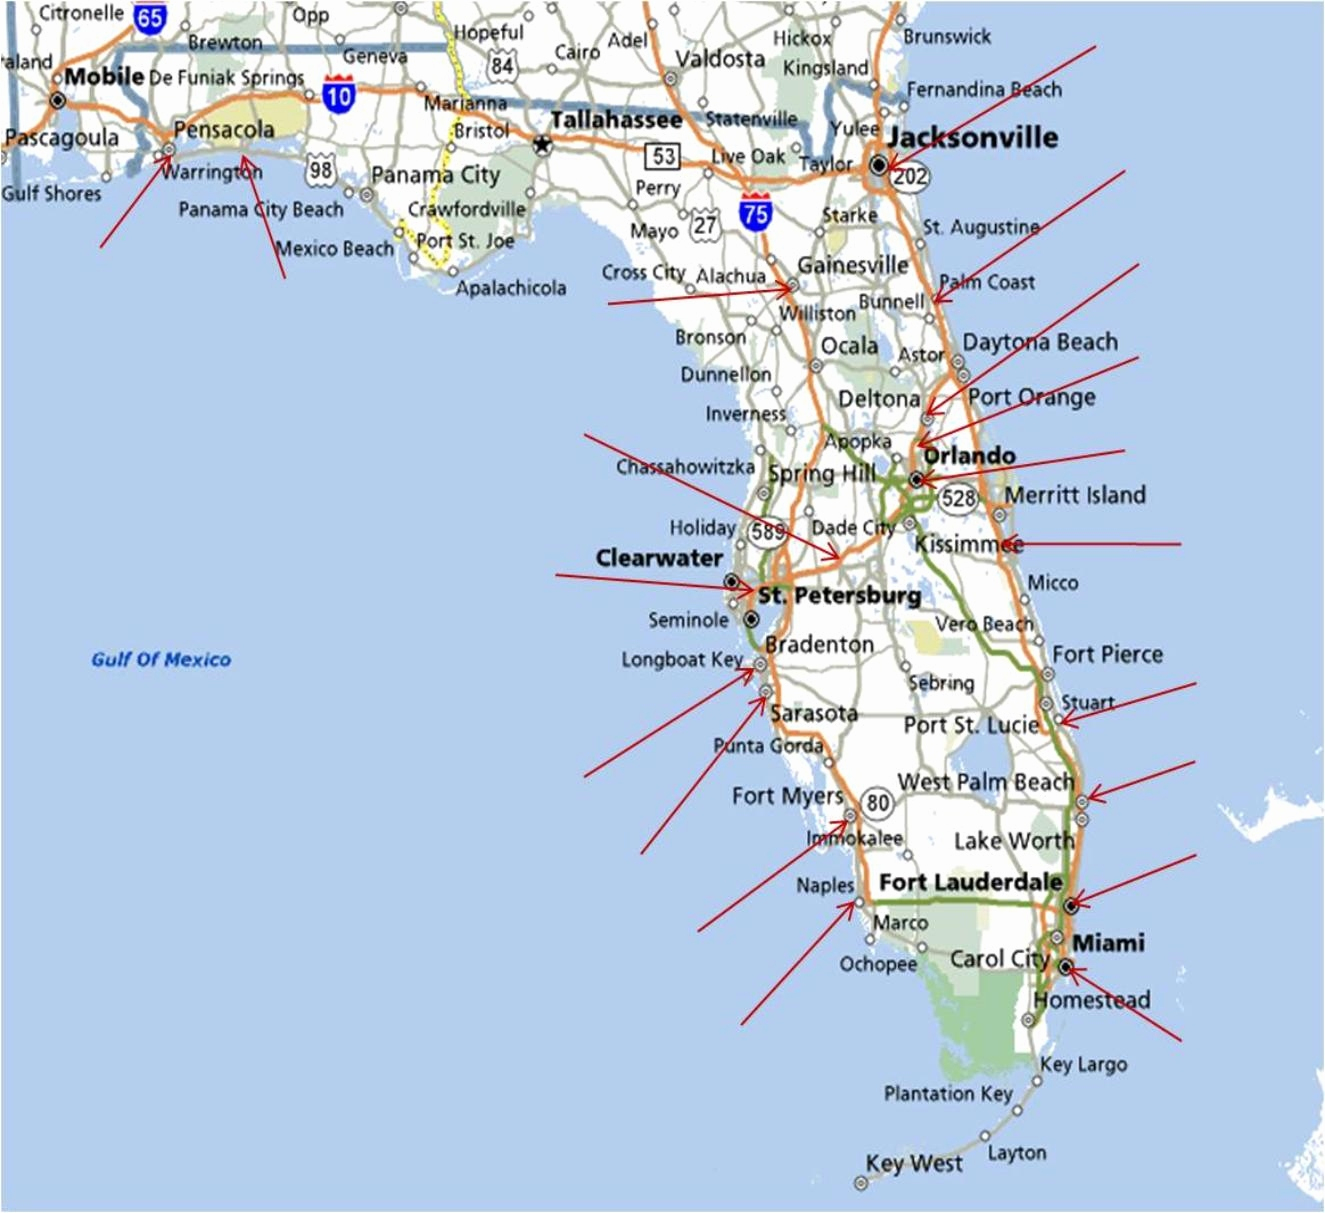 Best East Coast Florida Beaches New Map Florida West Coast Florida - Map Of Florida Cities And Beaches